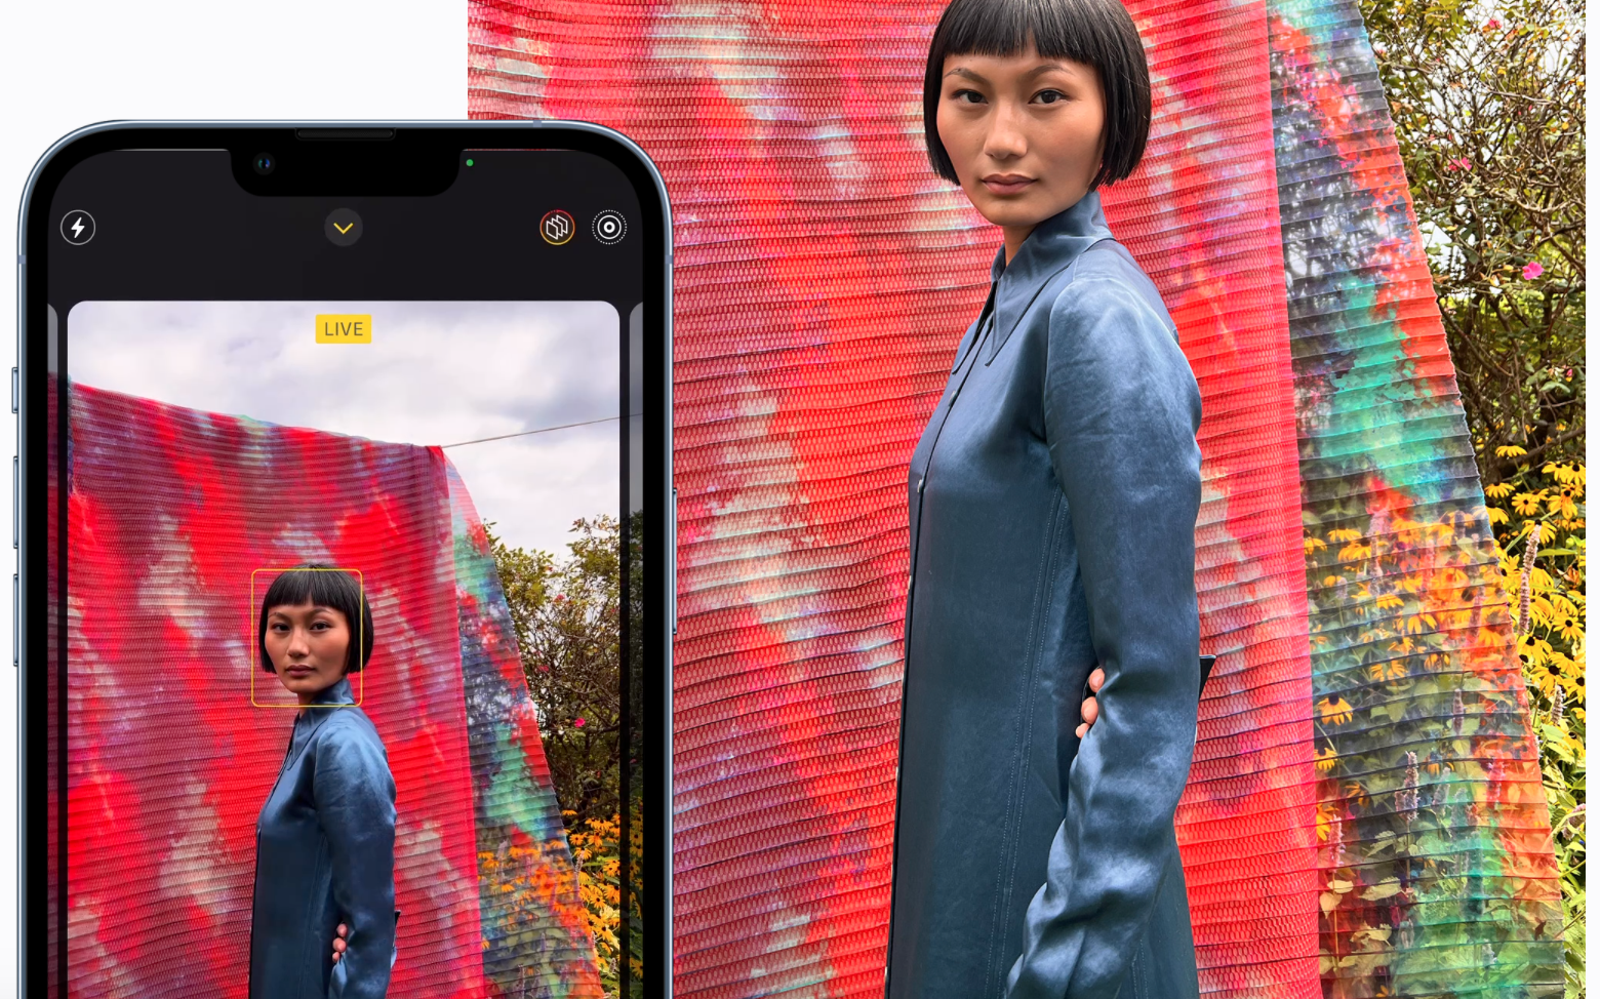 How to Take More Vibrant Photos on Your iPhone